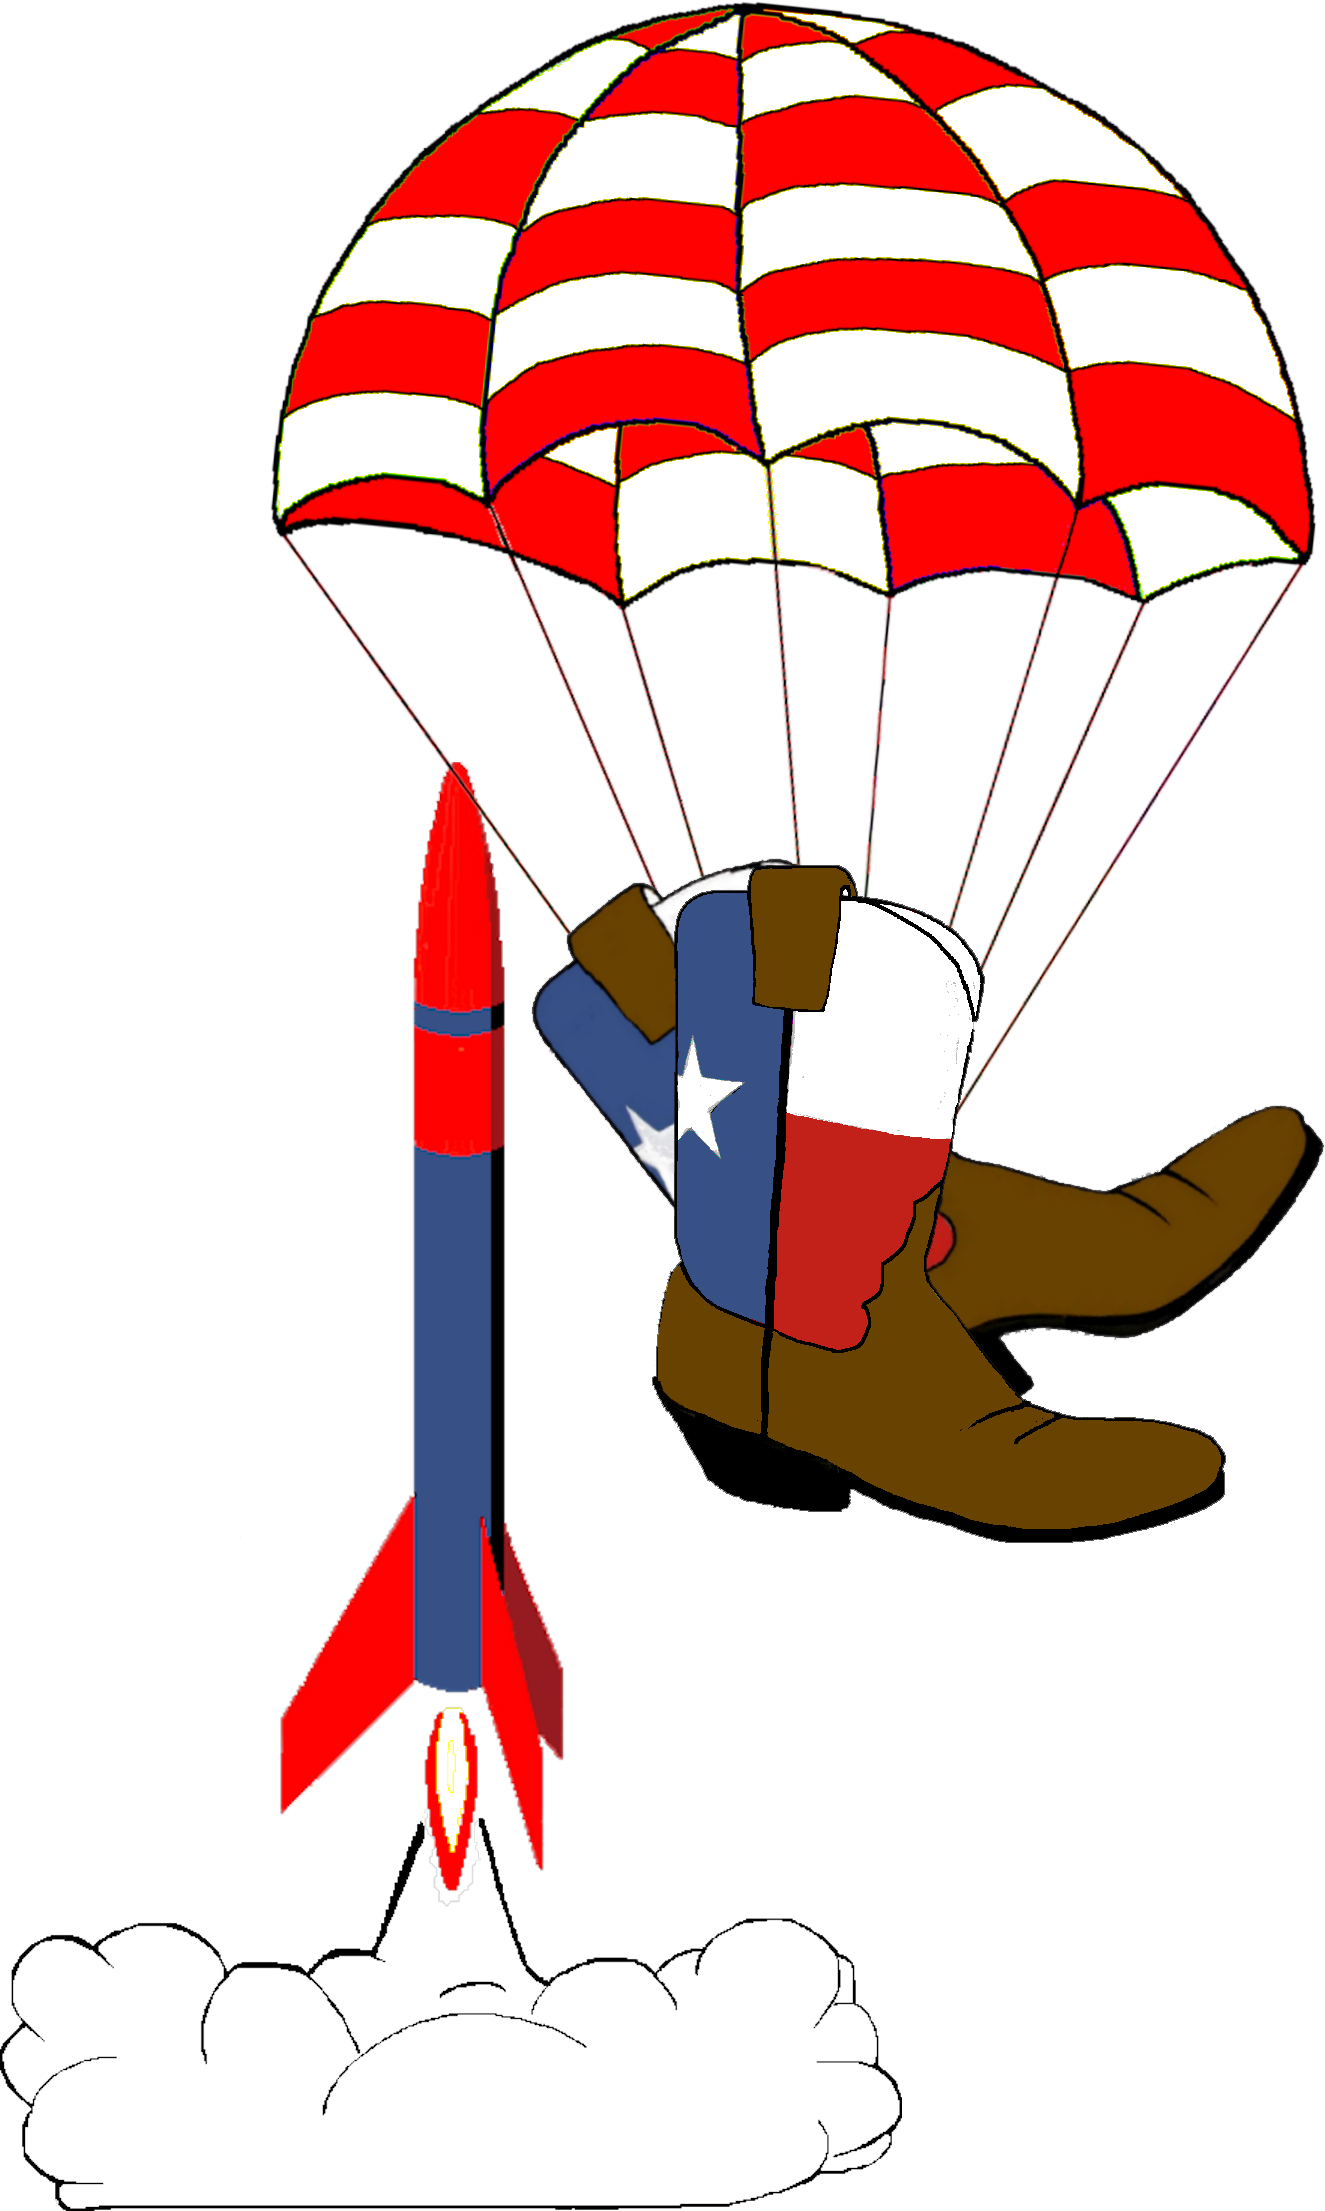 Boots chutes model assn. Clipart rocket rocketry